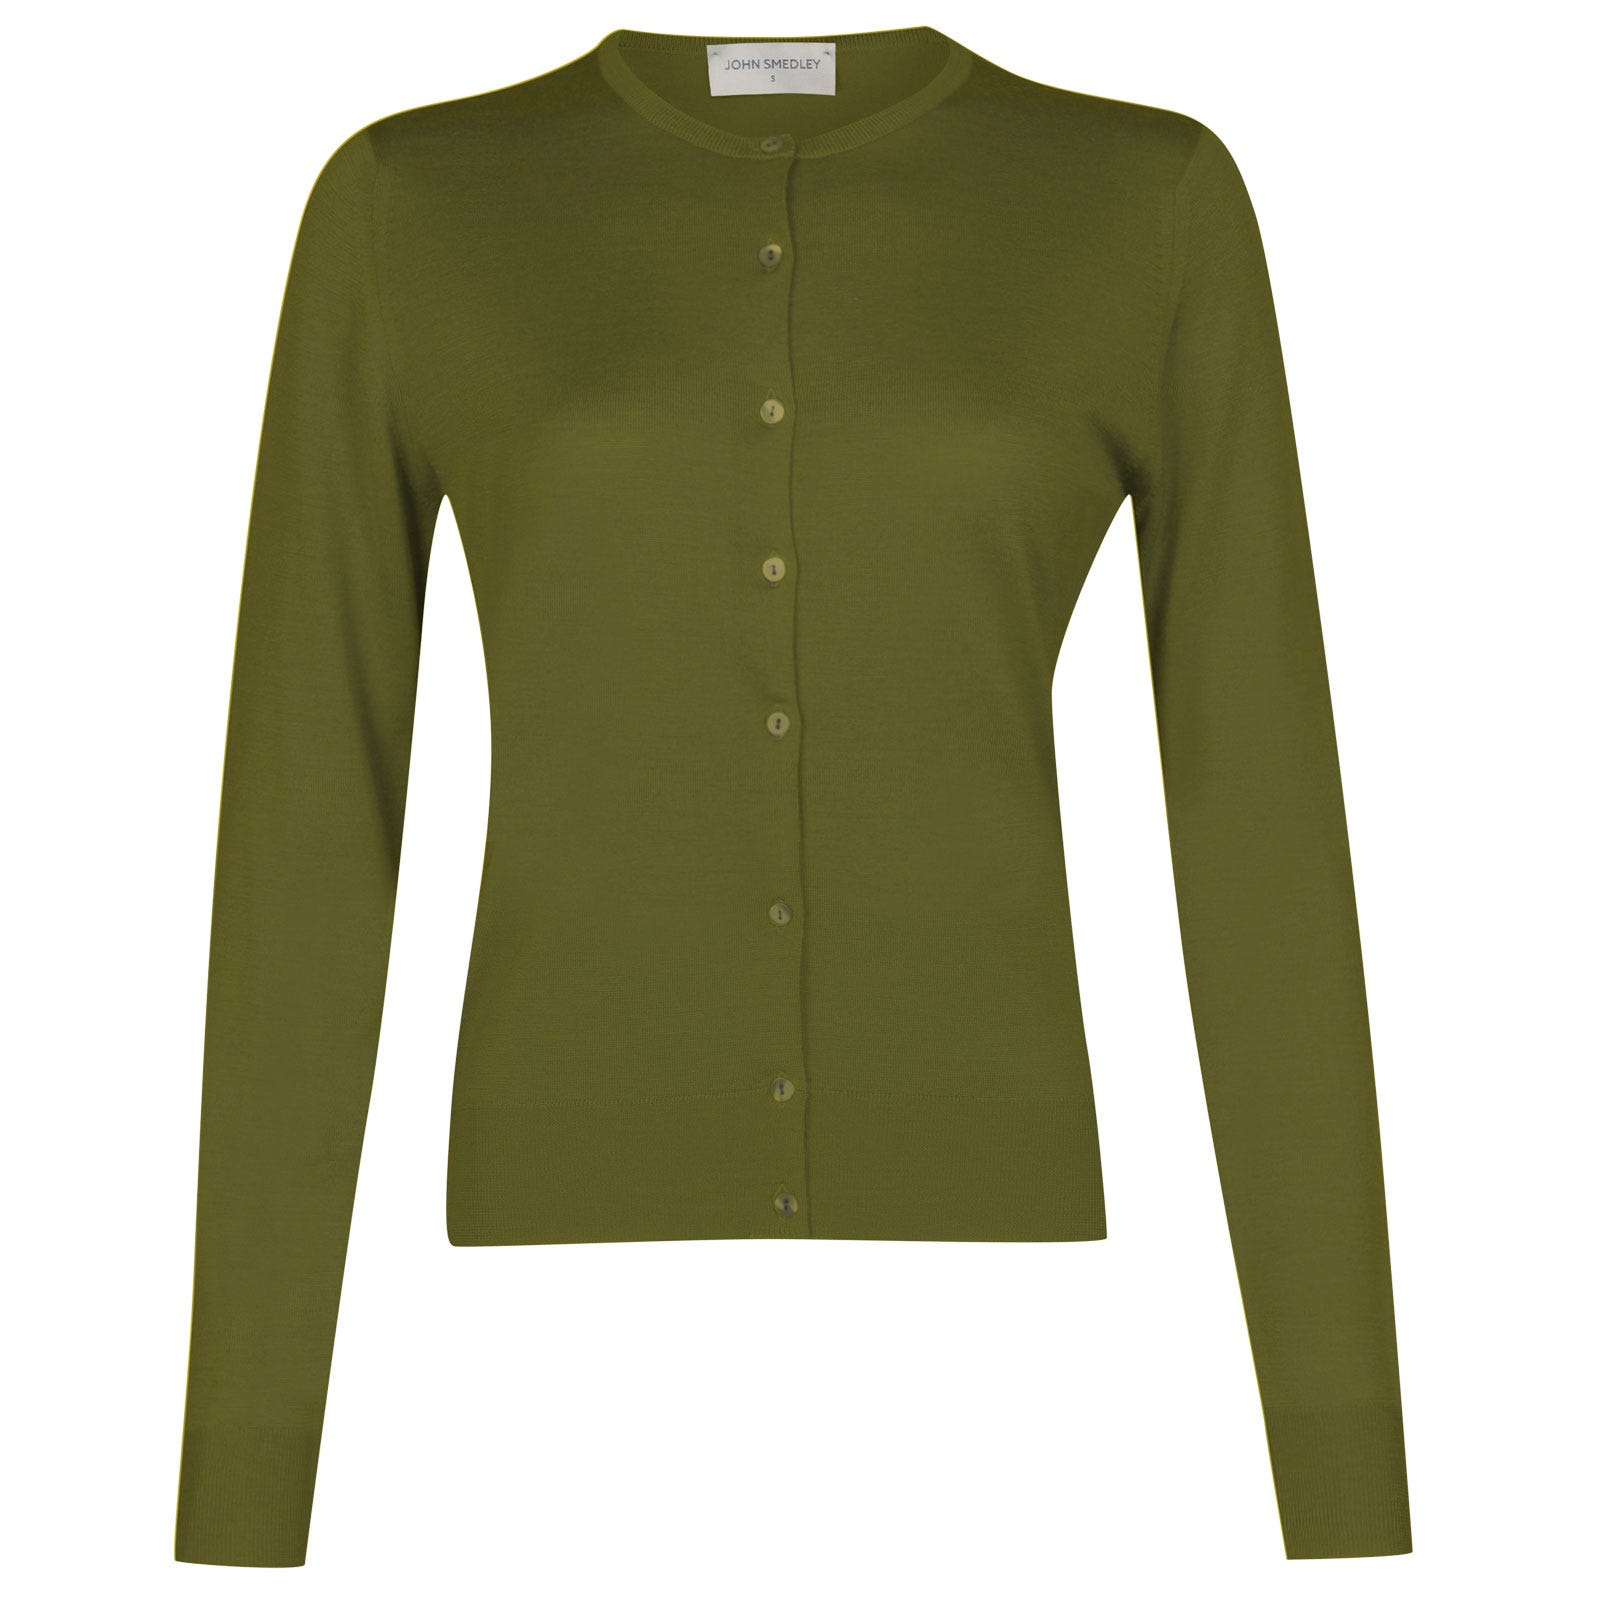 John Smedley pansy Merino Wool Cardigan in Lumsdale Green-XL